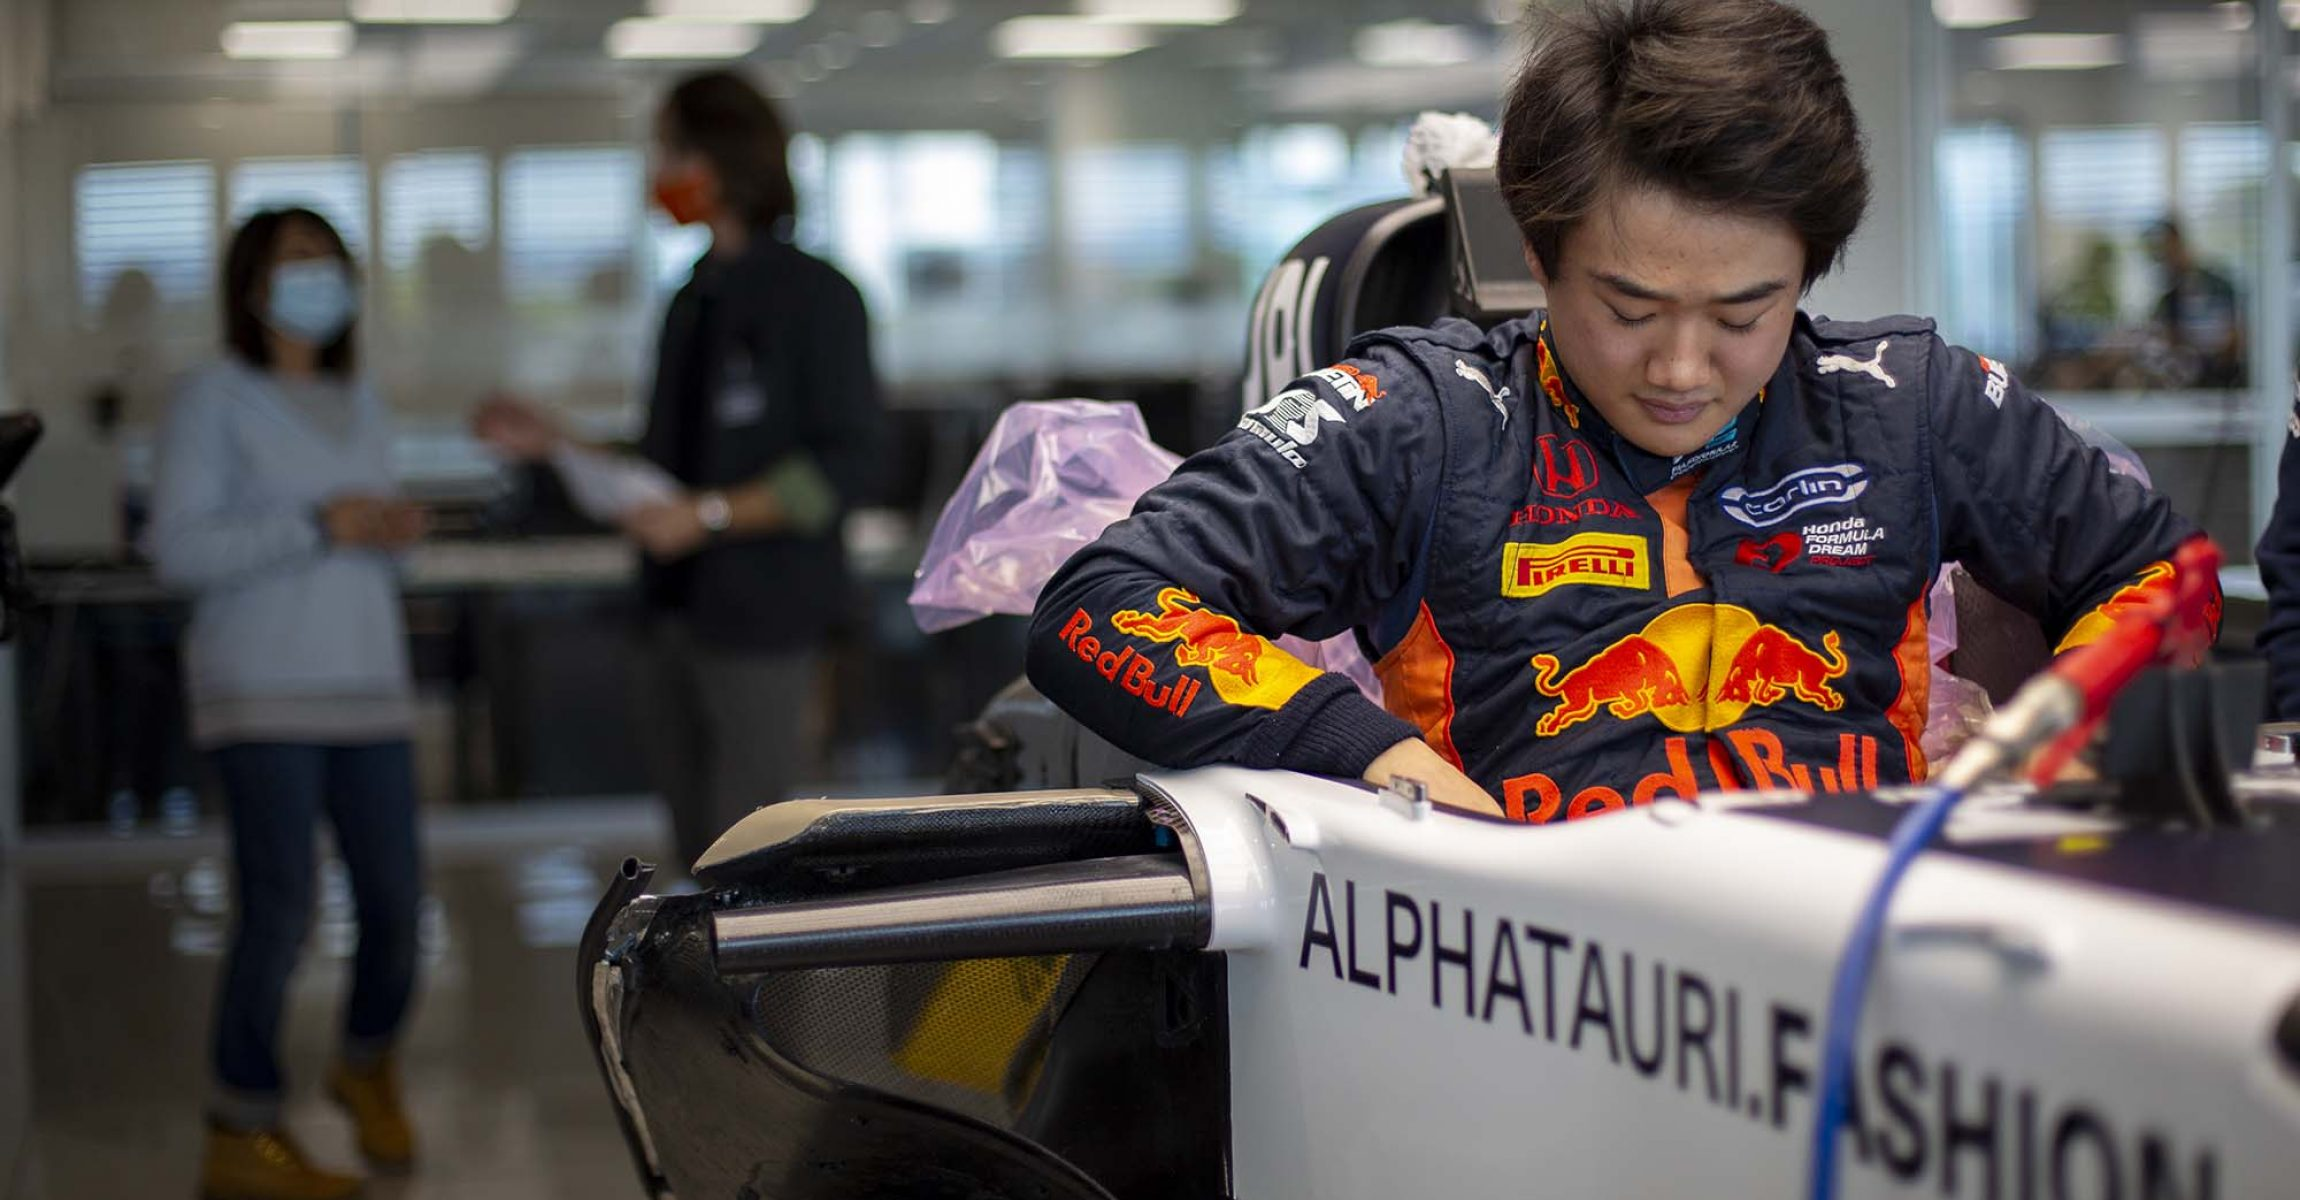 FAENZA, ITALY - OCTOBER 14: Yuki Tsunoda of Japan completes his seat fit at the Scuderia AlphaTauri factory on October 14, 2020 in Faenza, Italy. (Photo by Josh Kruse/Scuderia AlphaTauri) // Josh Kruse / Scuderia AlphaTauri / Red Bull Content Pool // SI202010140212 // Usage for editorial use only //